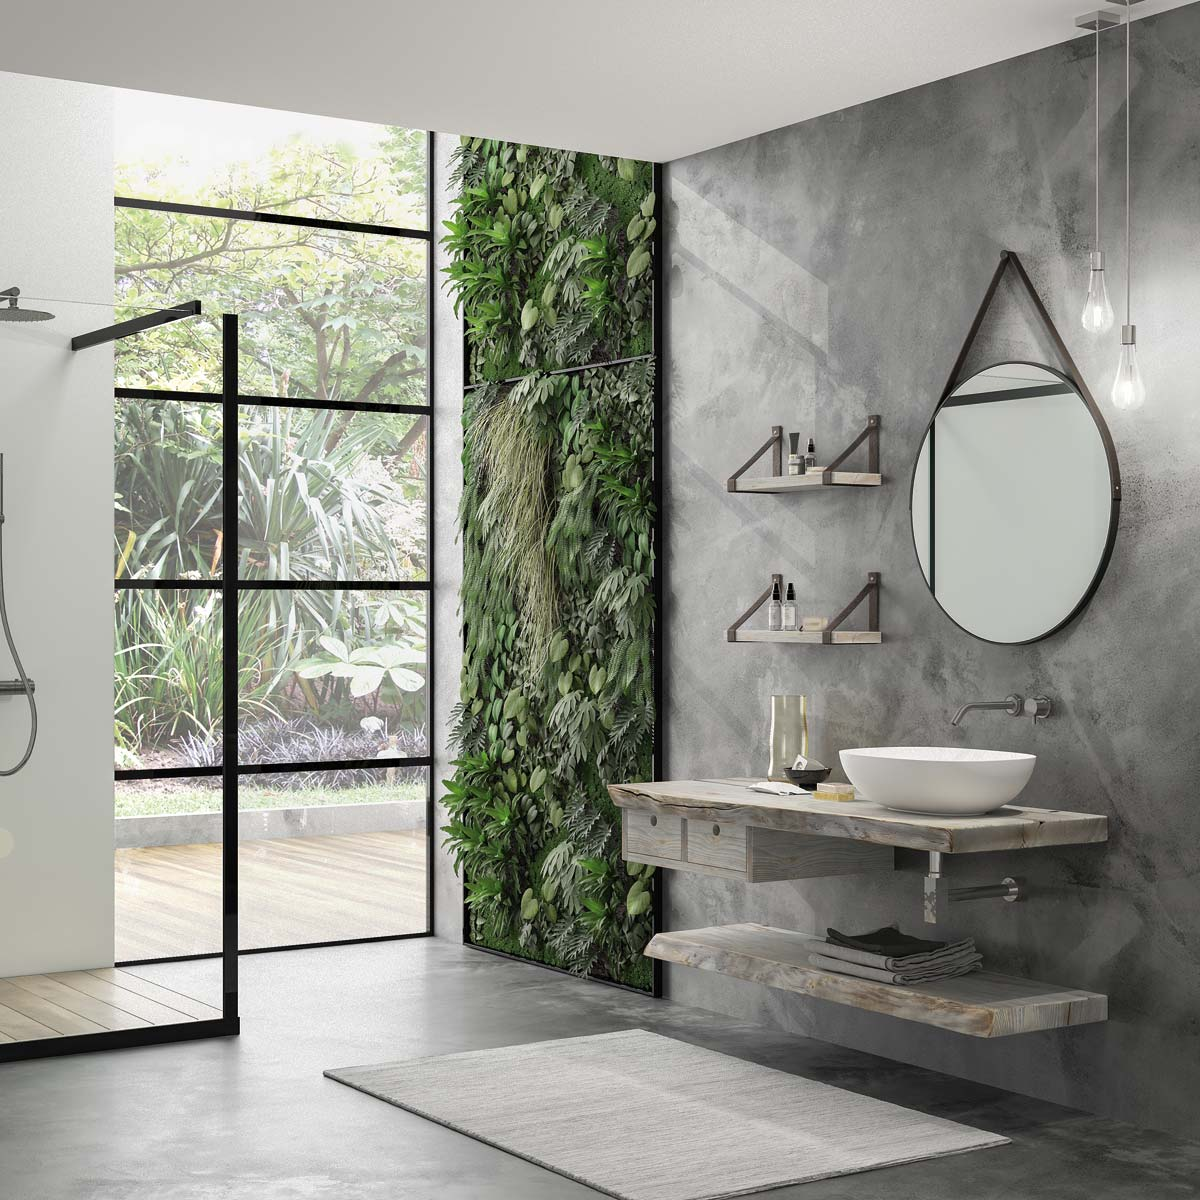 Rediscover Nature in your bathroom